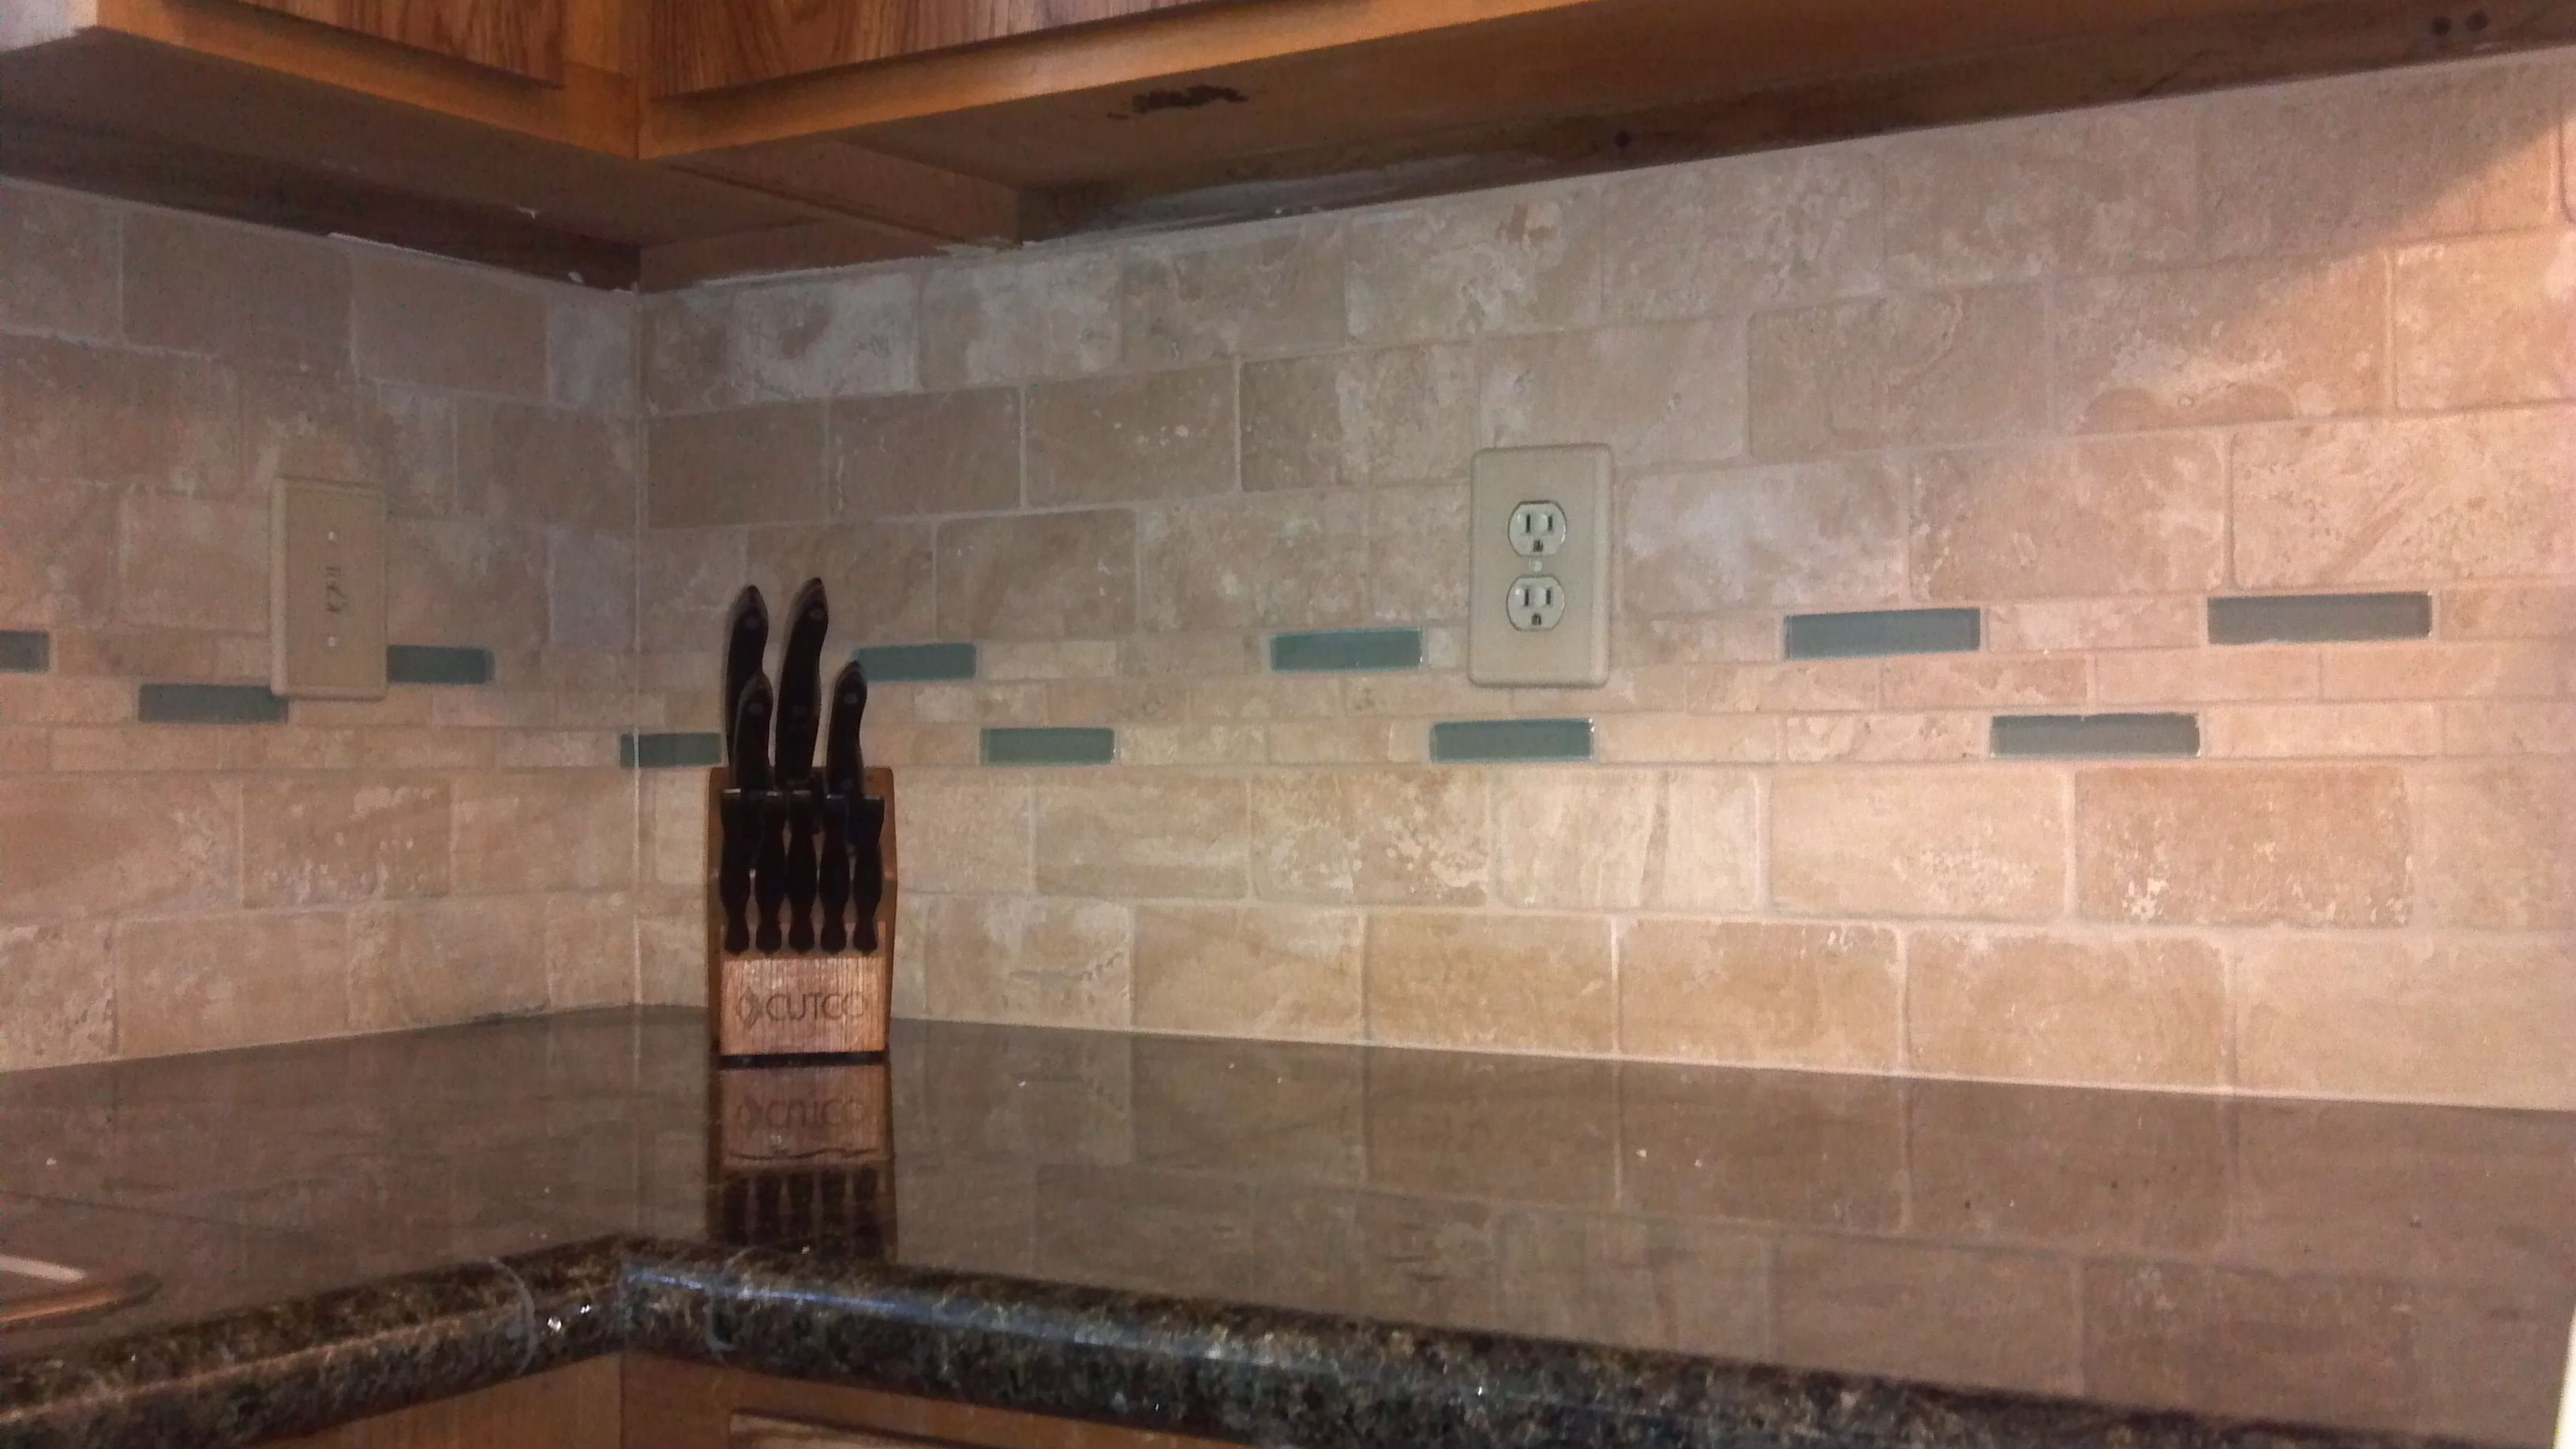 Tile backsplash and glass and travertine tile installation uba tuba granite travertine - Backsplash designs travertine ...